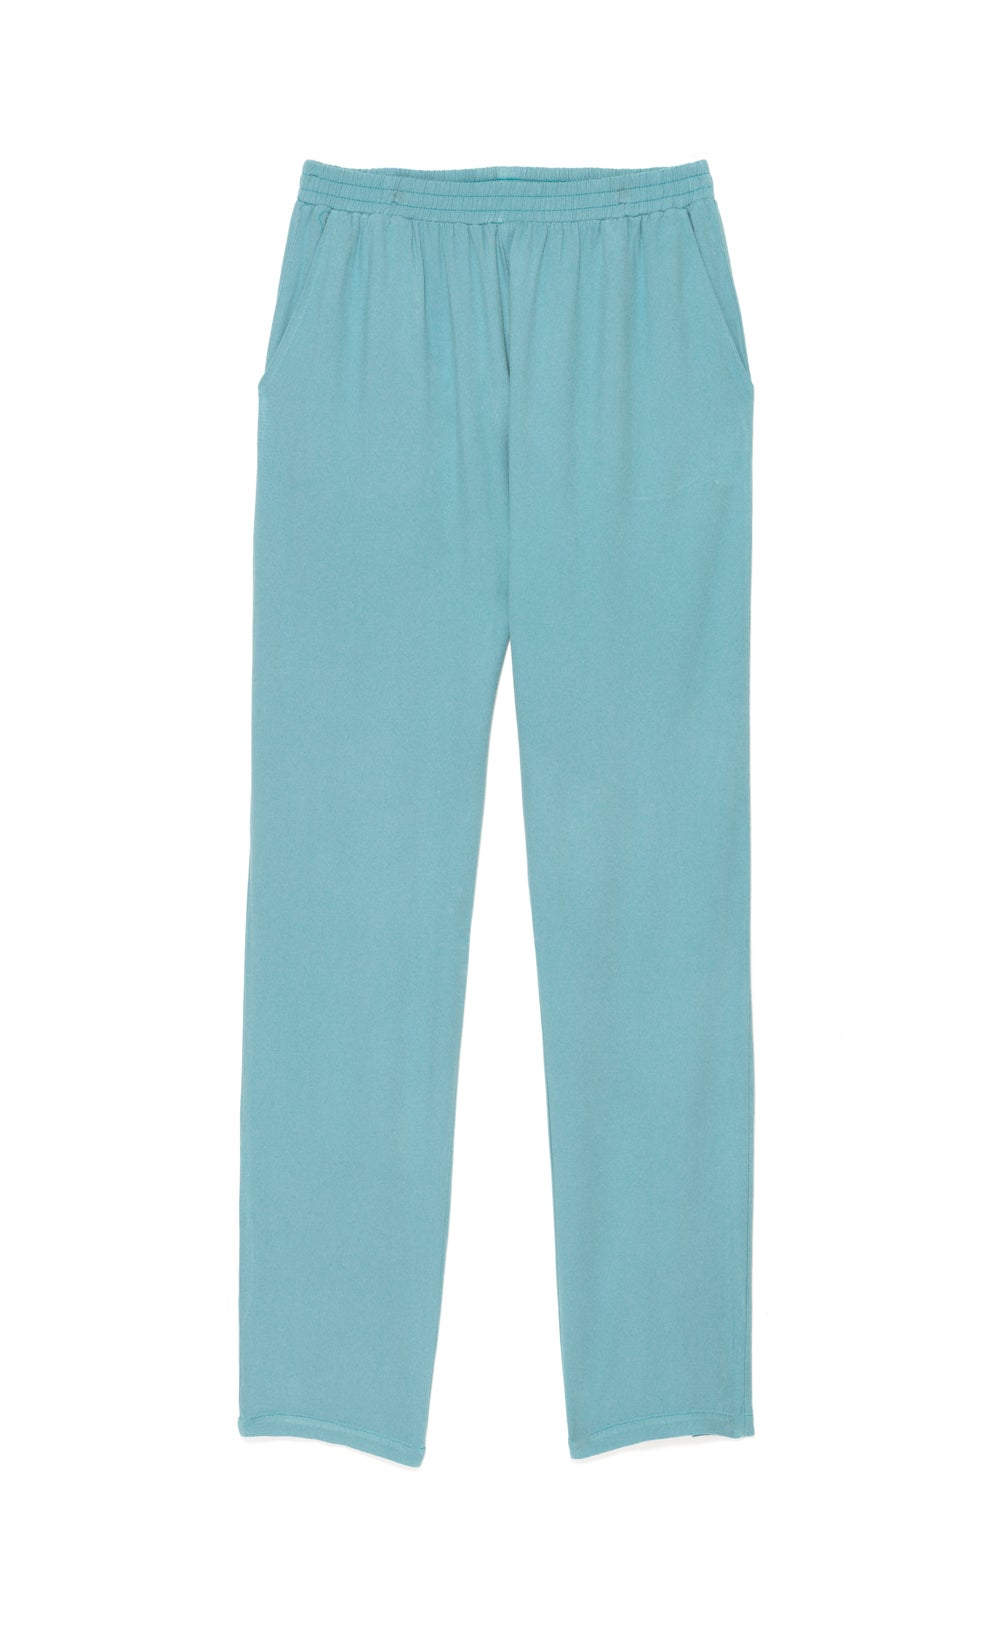 Image of Pantalon twill PENELOPE coloris pastels